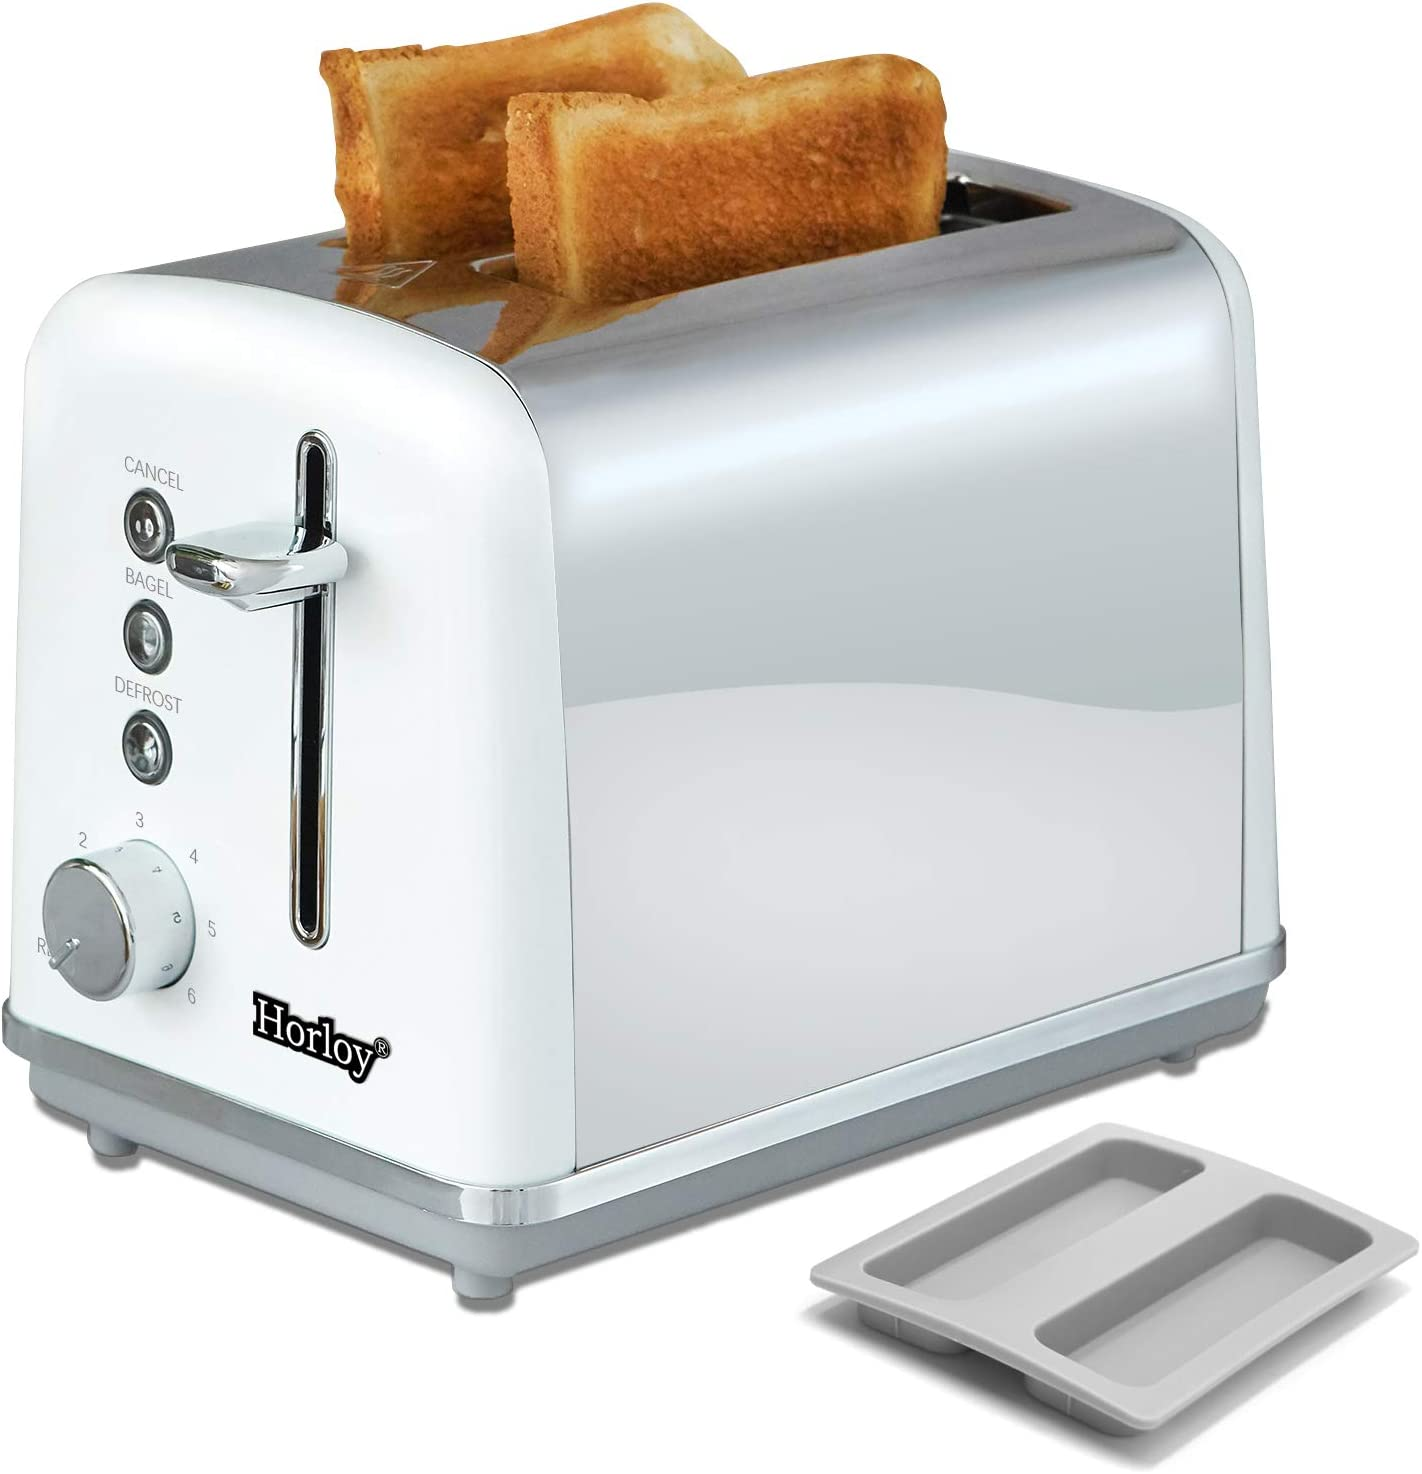 Horloy Stainless Steel Toaster 2 Slice Compact Bread Toaster Extra Wide Slots with Dust Cover and Removable Crumb Tray, Cancel/Bagel/Defrost/Reheat Functions 6 Bread Shade Settings, White Silver